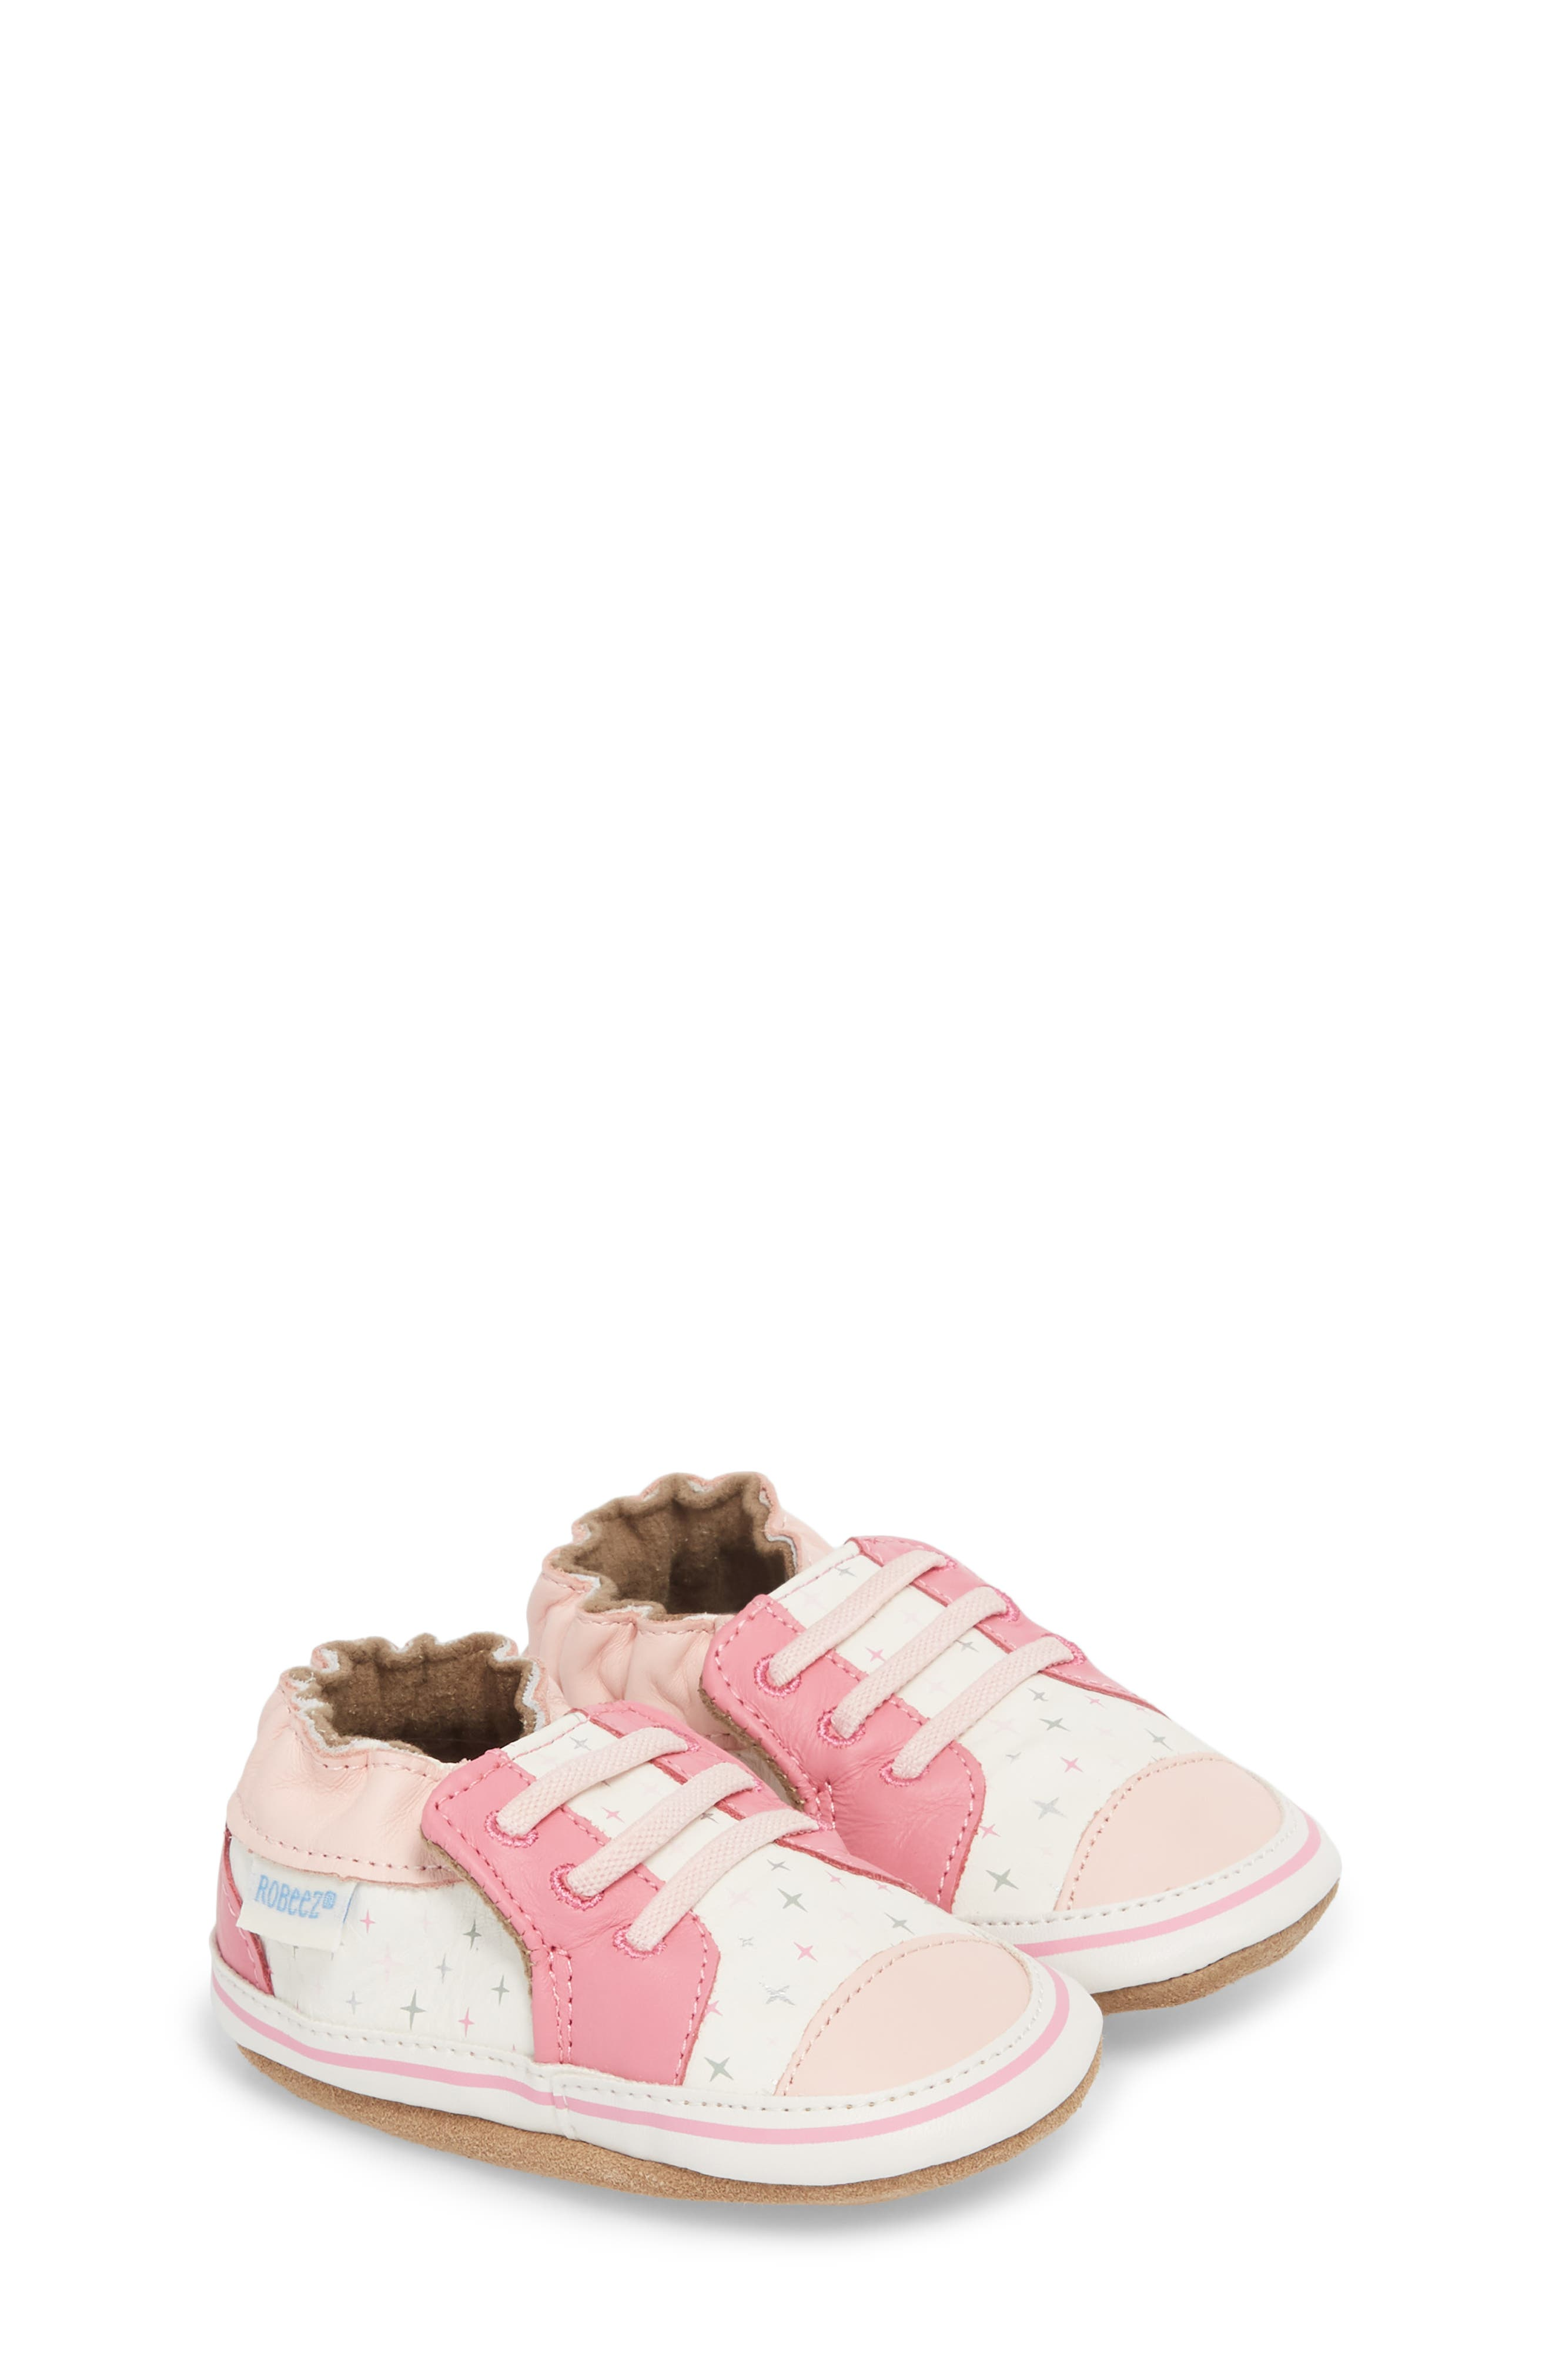 Trendy Trainer Sneaker Crib Shoe,                         Main,                         color, 650